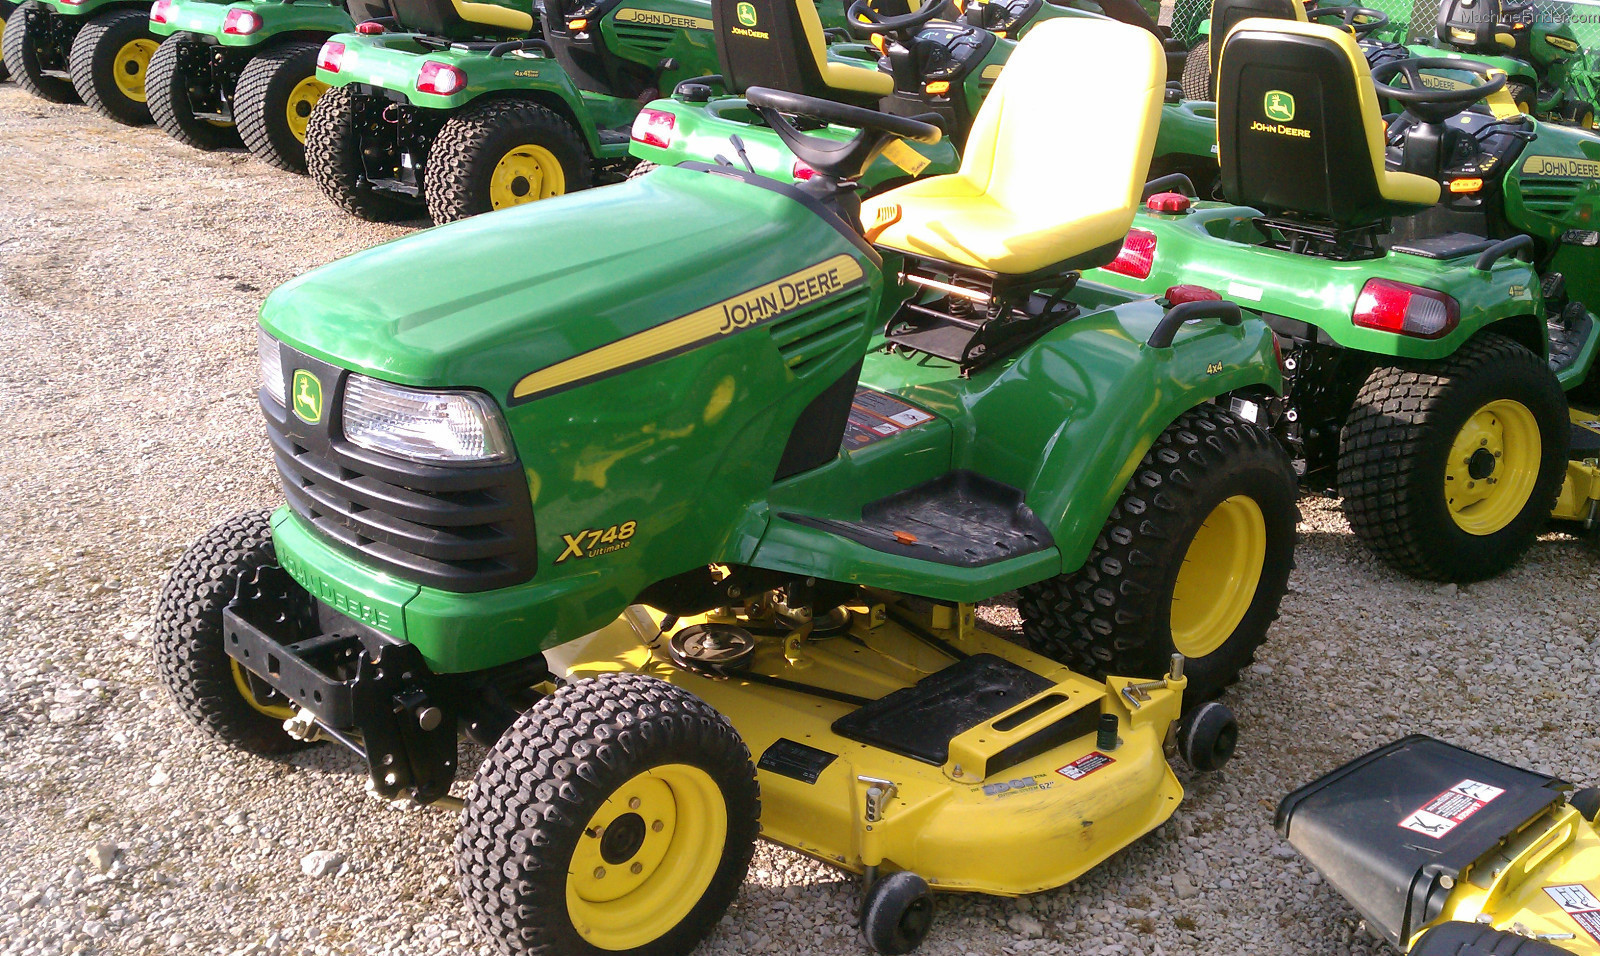 John Deere 944 http://www.machinefinder.com/ww/en-US/machine/2286280